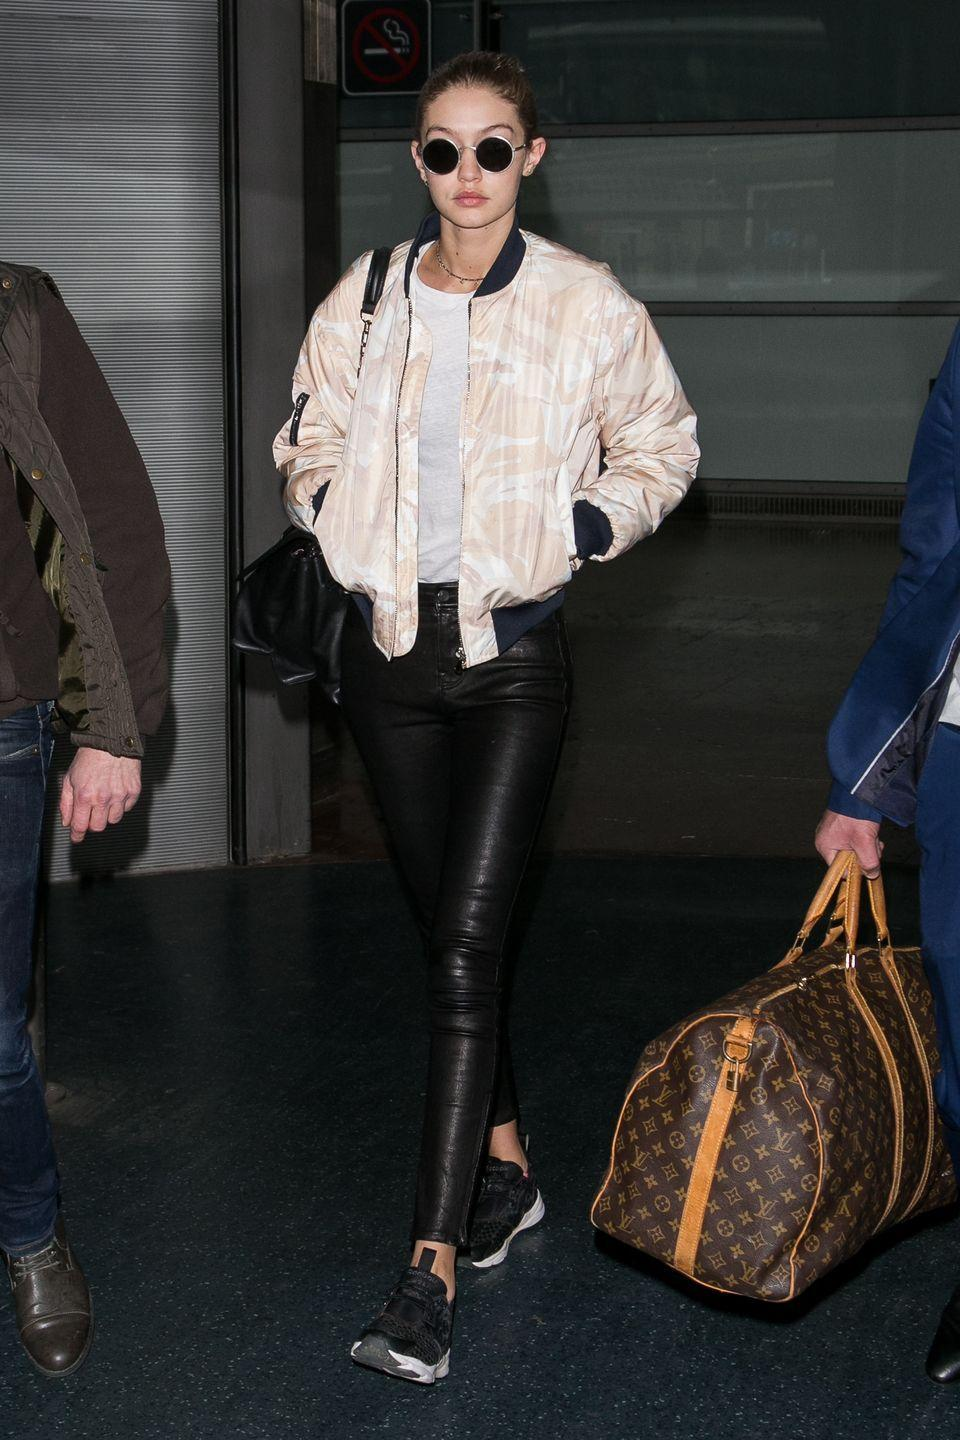 """<p>In tight leather leggings and a <a href=""""http://www.ganni.com/home"""" rel=""""nofollow noopener"""" target=""""_blank"""" data-ylk=""""slk:Ganni"""" class=""""link rapid-noclick-resp"""">Ganni</a> pastel bomber jacket at Aeroport Roissy in Paris, France.</p>"""